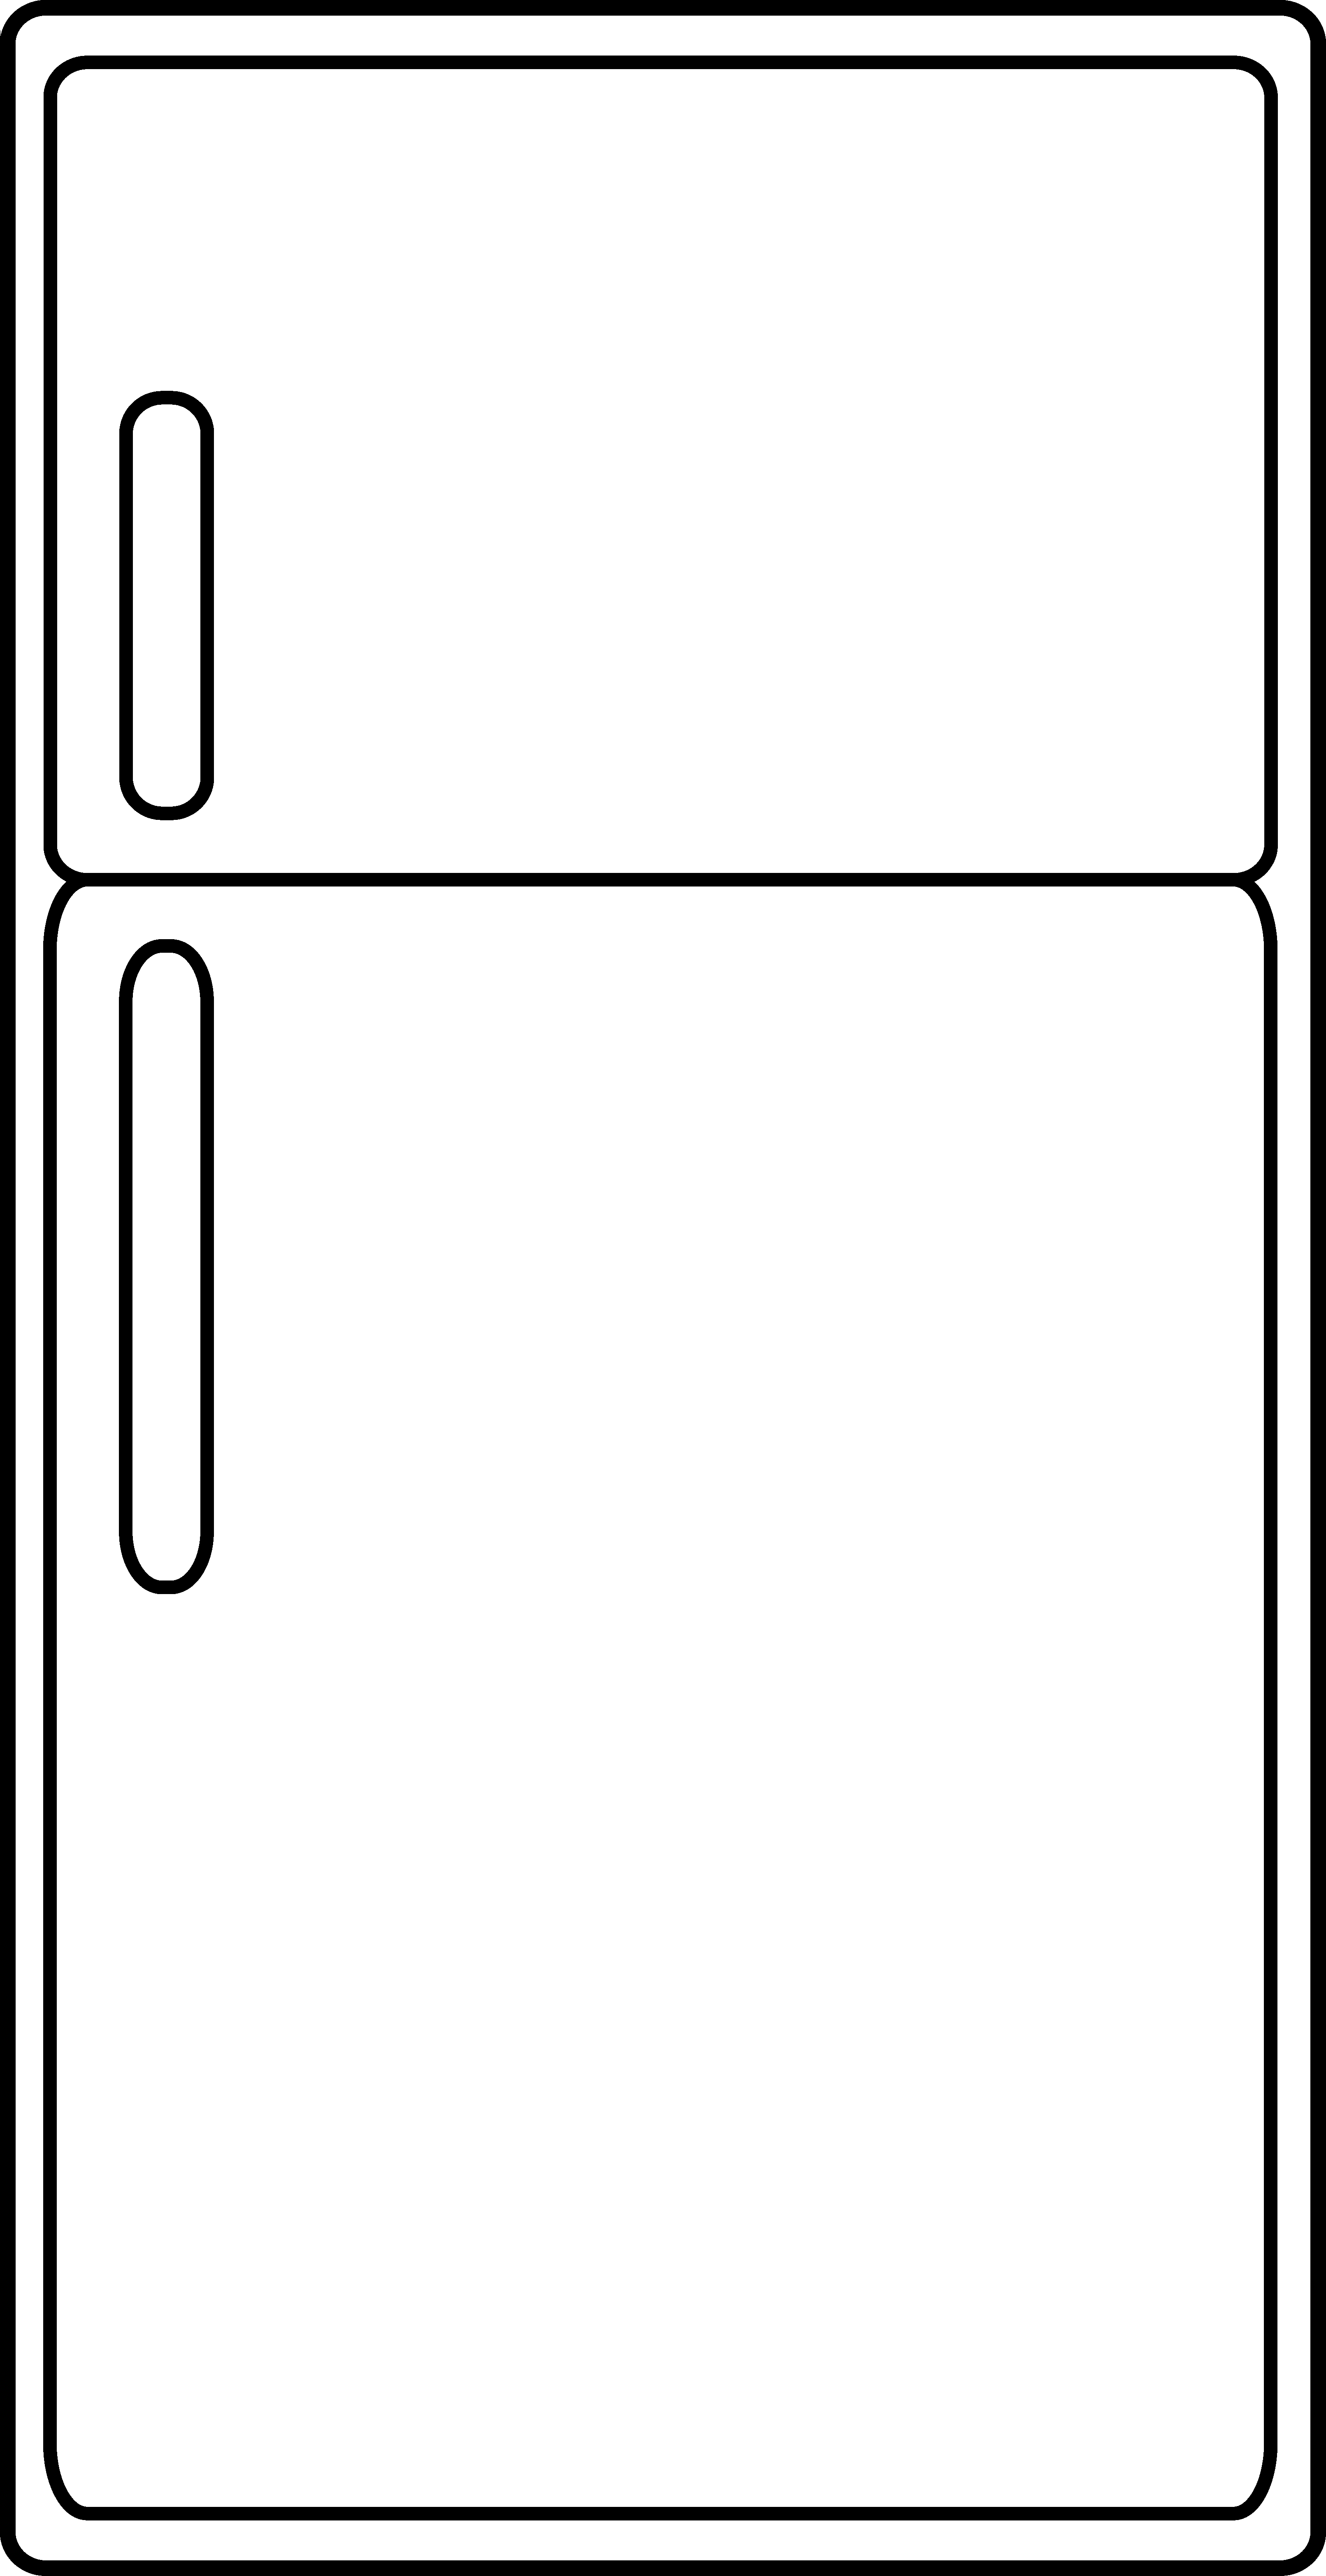 User taking picture of refrigerator clipart png clipart free download Fridge Clipart | Free download best Fridge Clipart on ... clipart free download